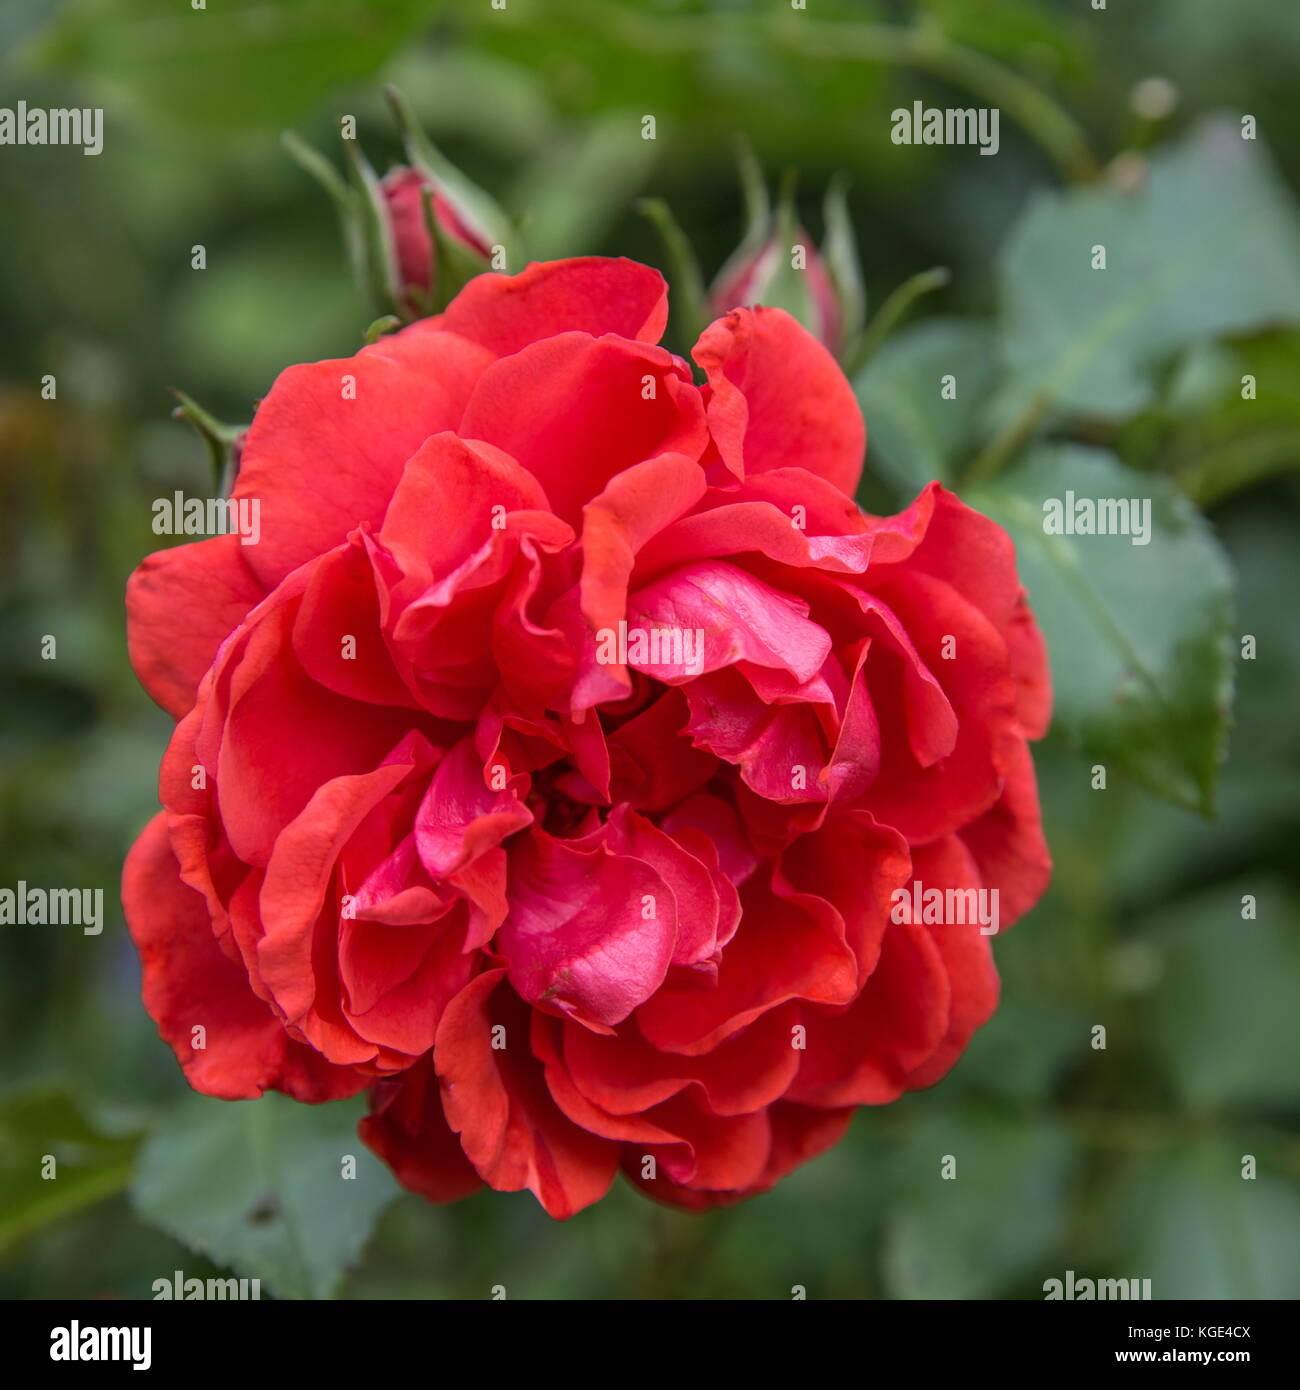 Beautiful red rose in a garden stock photo royalty free image beautiful red rose in a garden izmirmasajfo